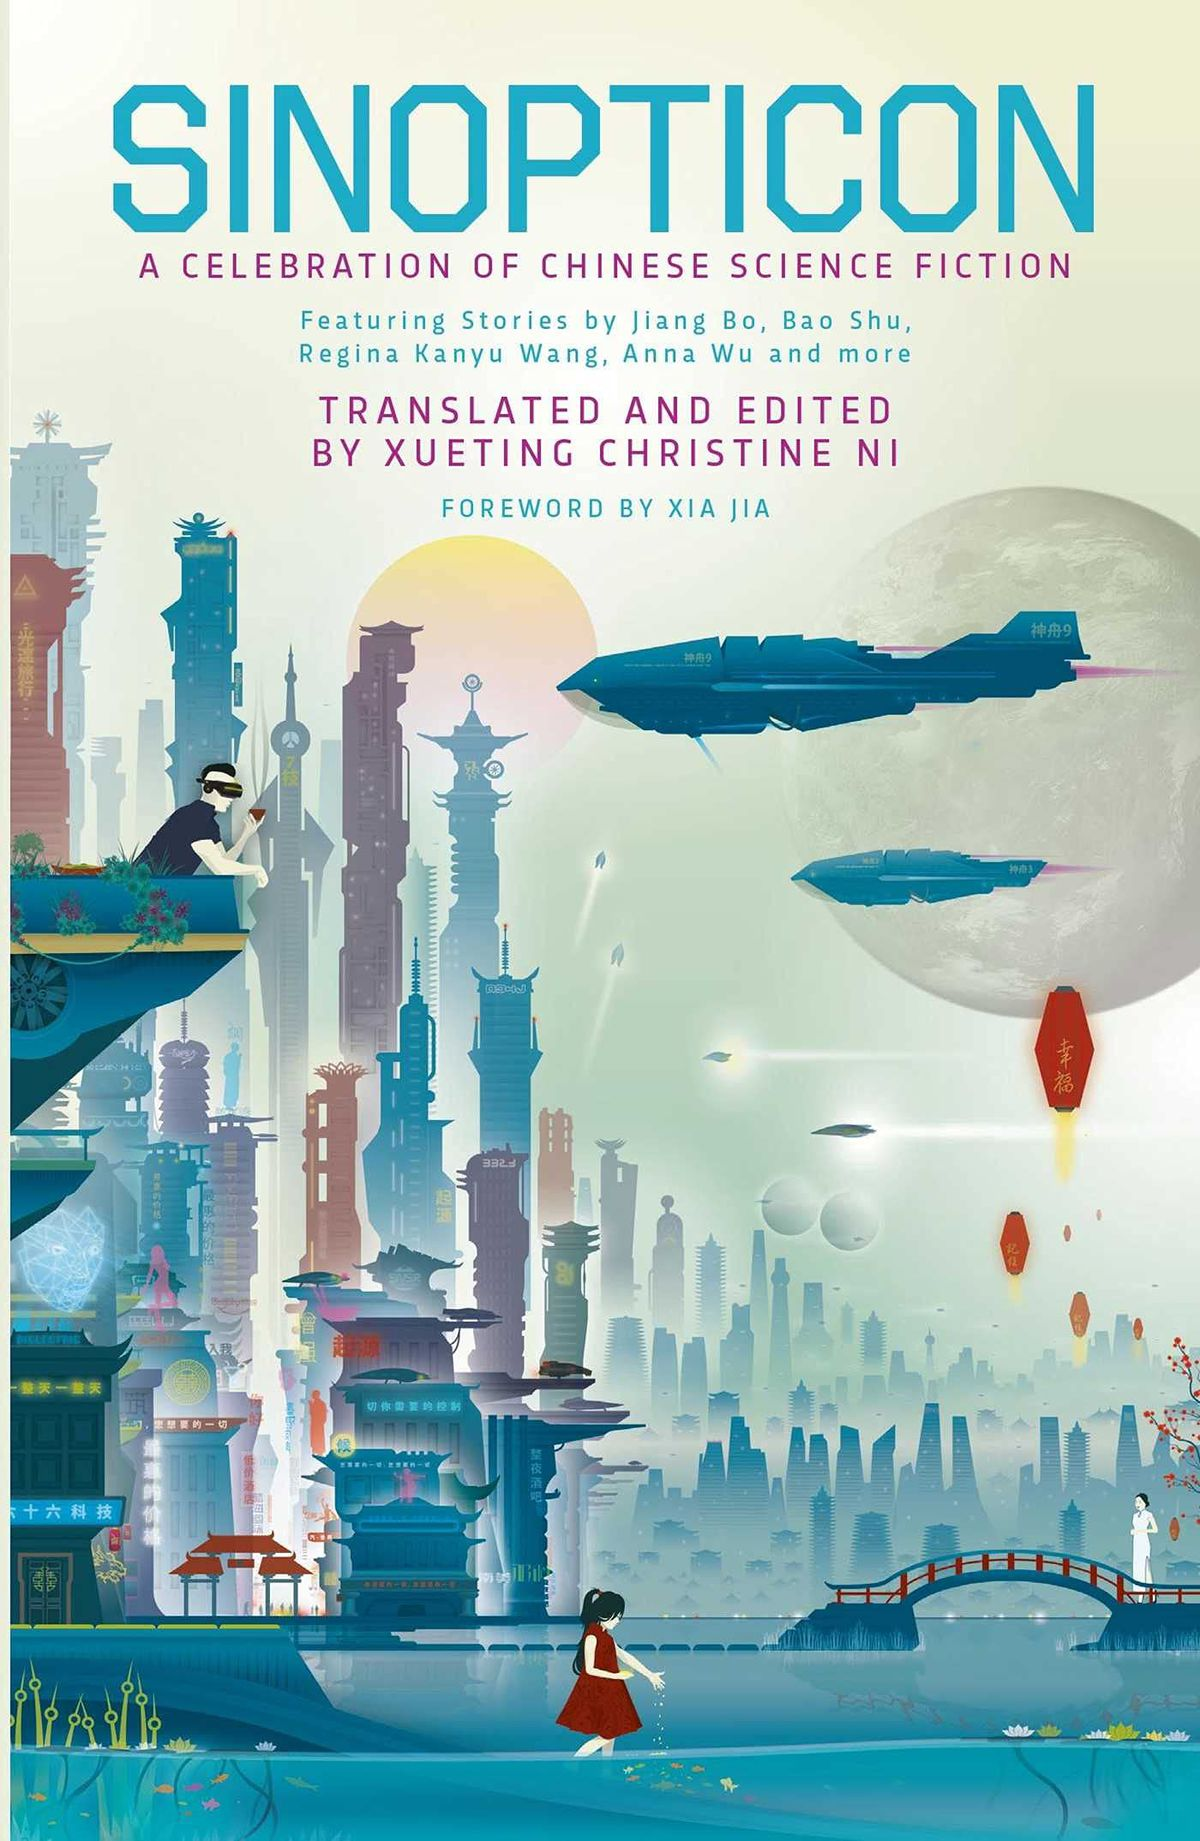 Sinopticon: A Celebration of Chinese Science Fiction book cover with a city surrounded by spaceships